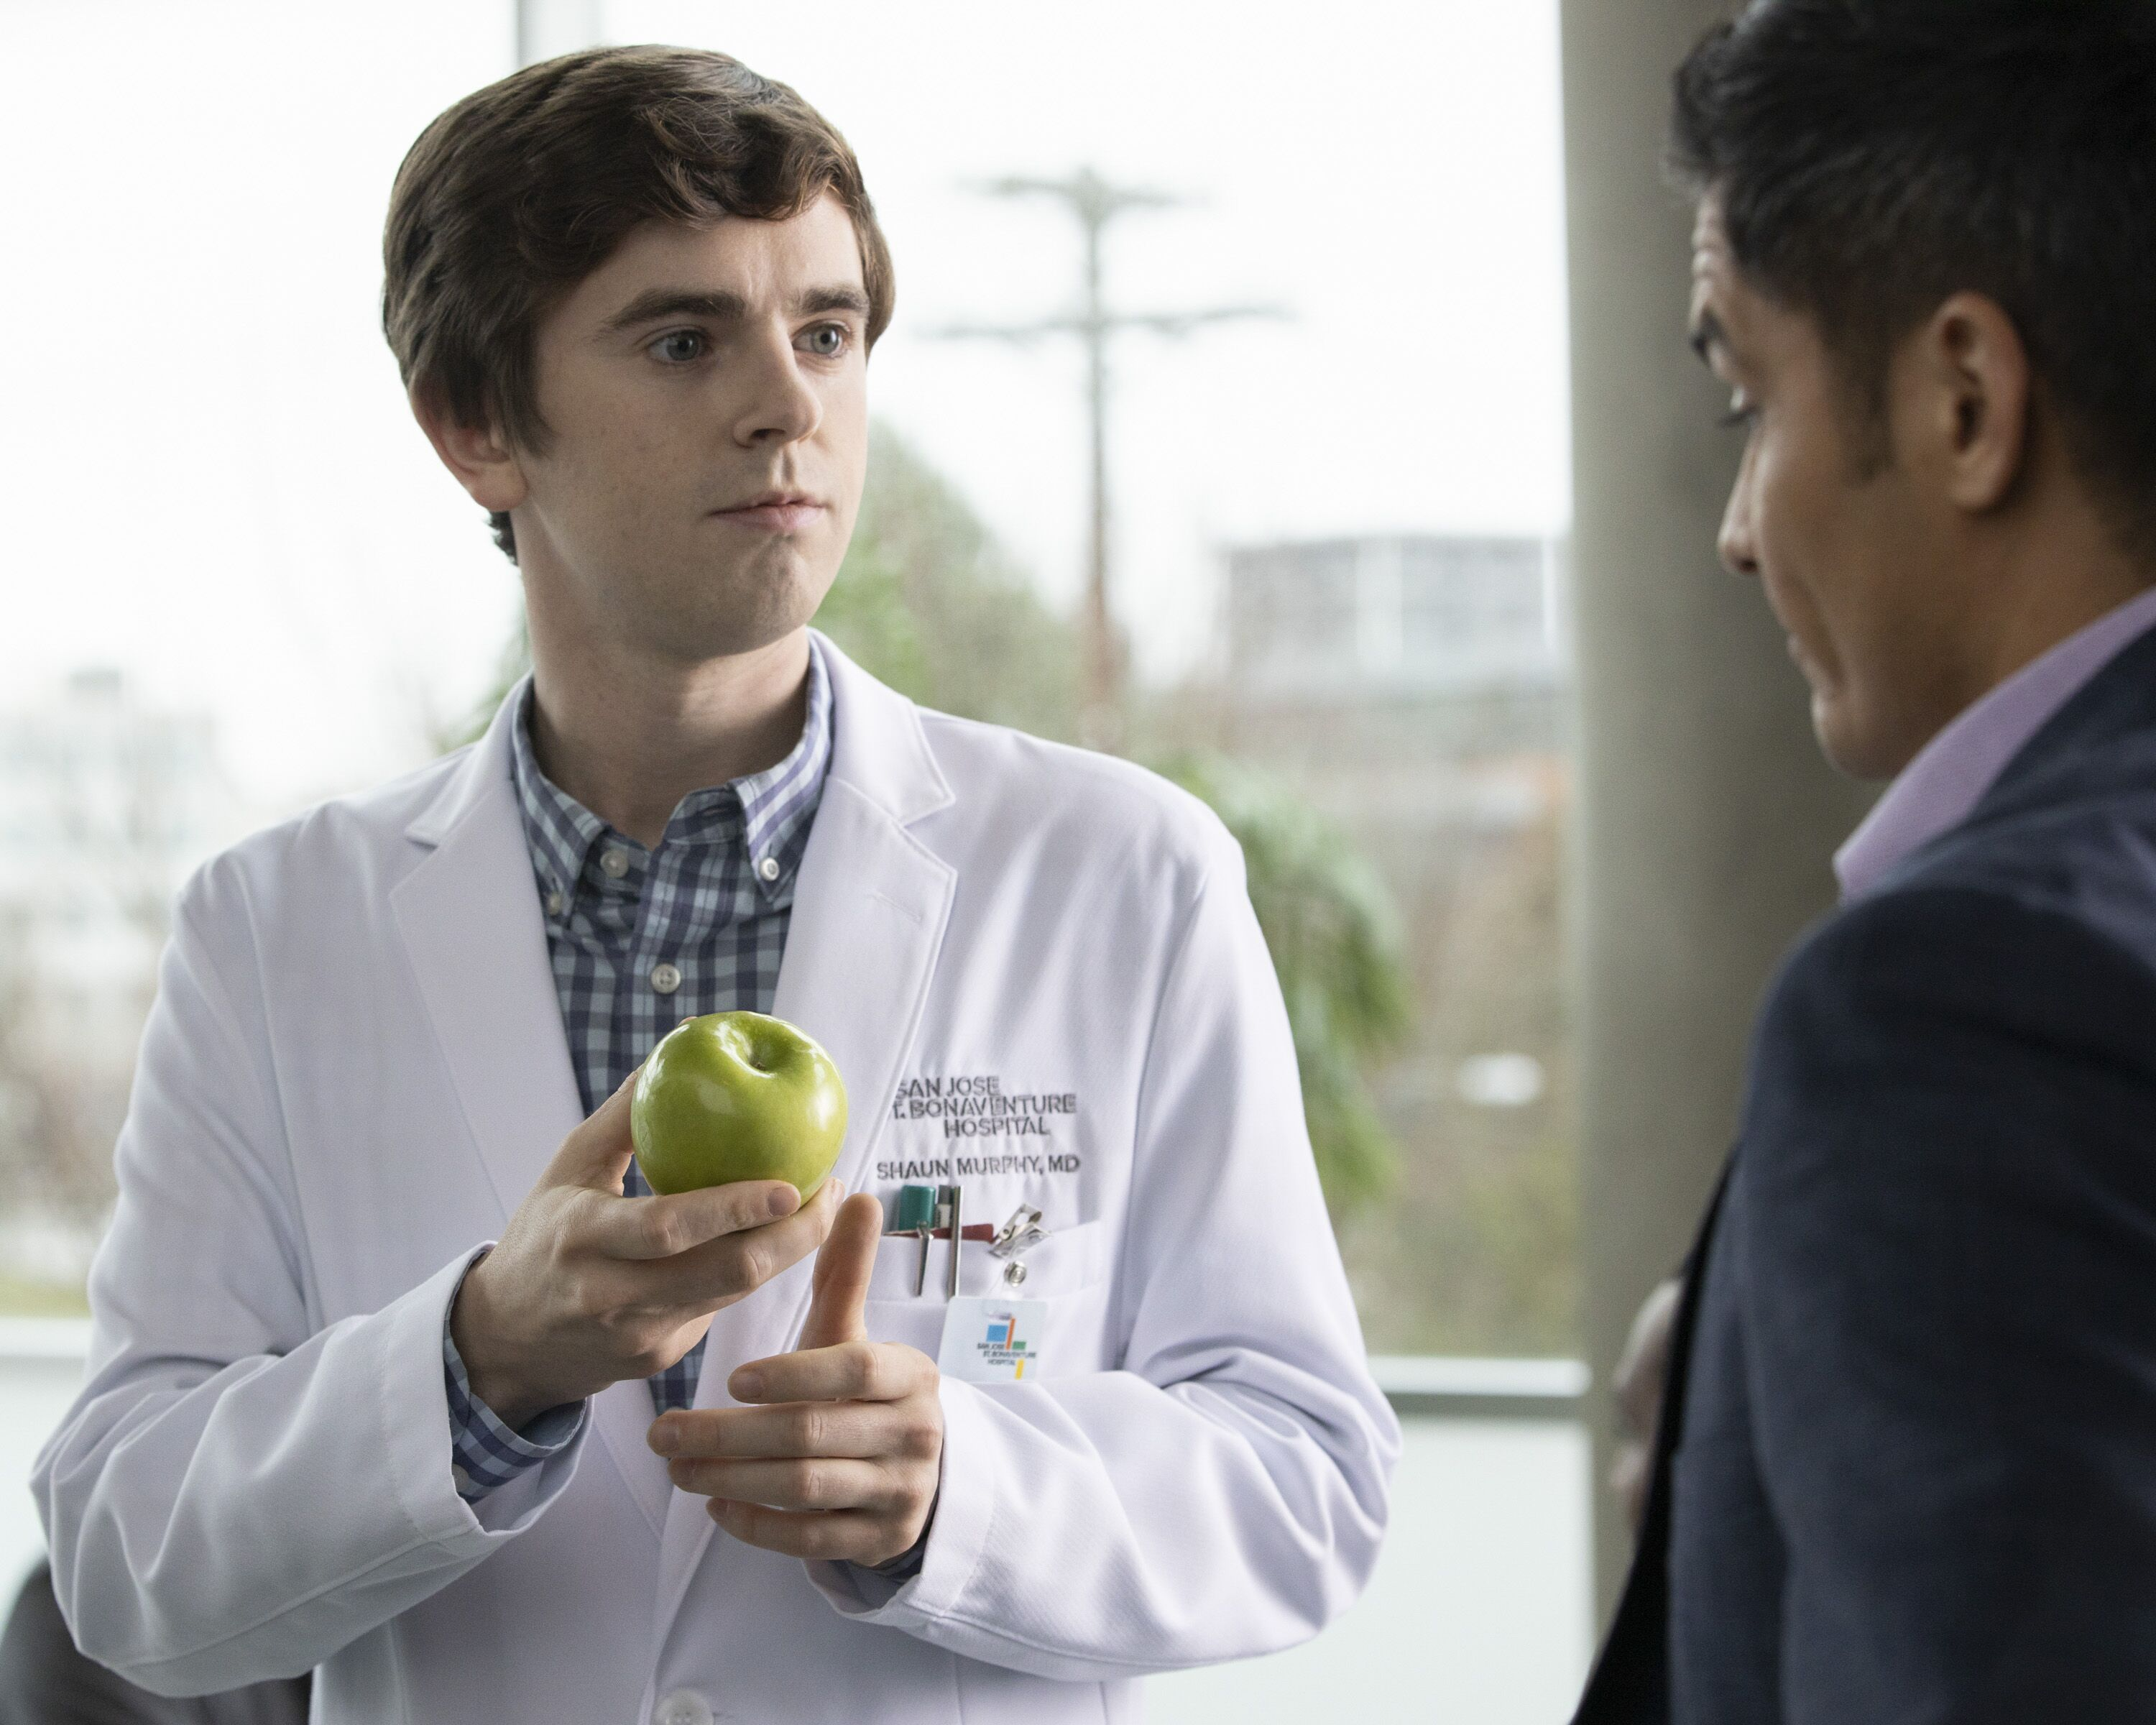 Is The Good Doctor on tonight, March 18?